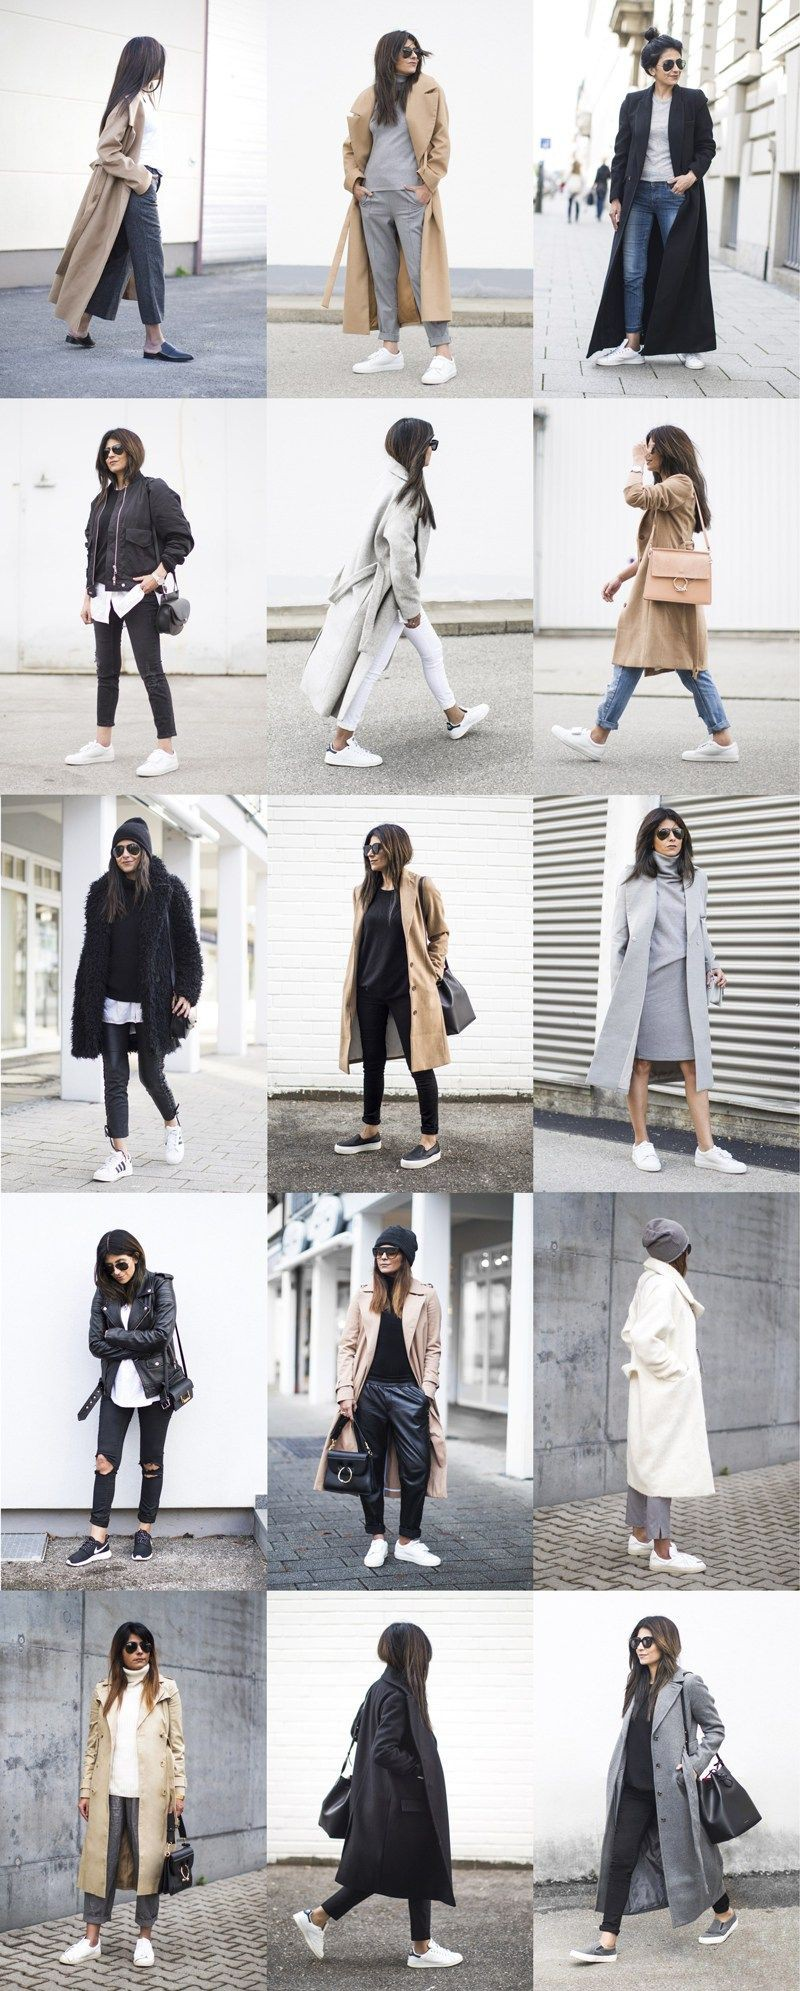 Do you see these minimal outfits, Sports shoes